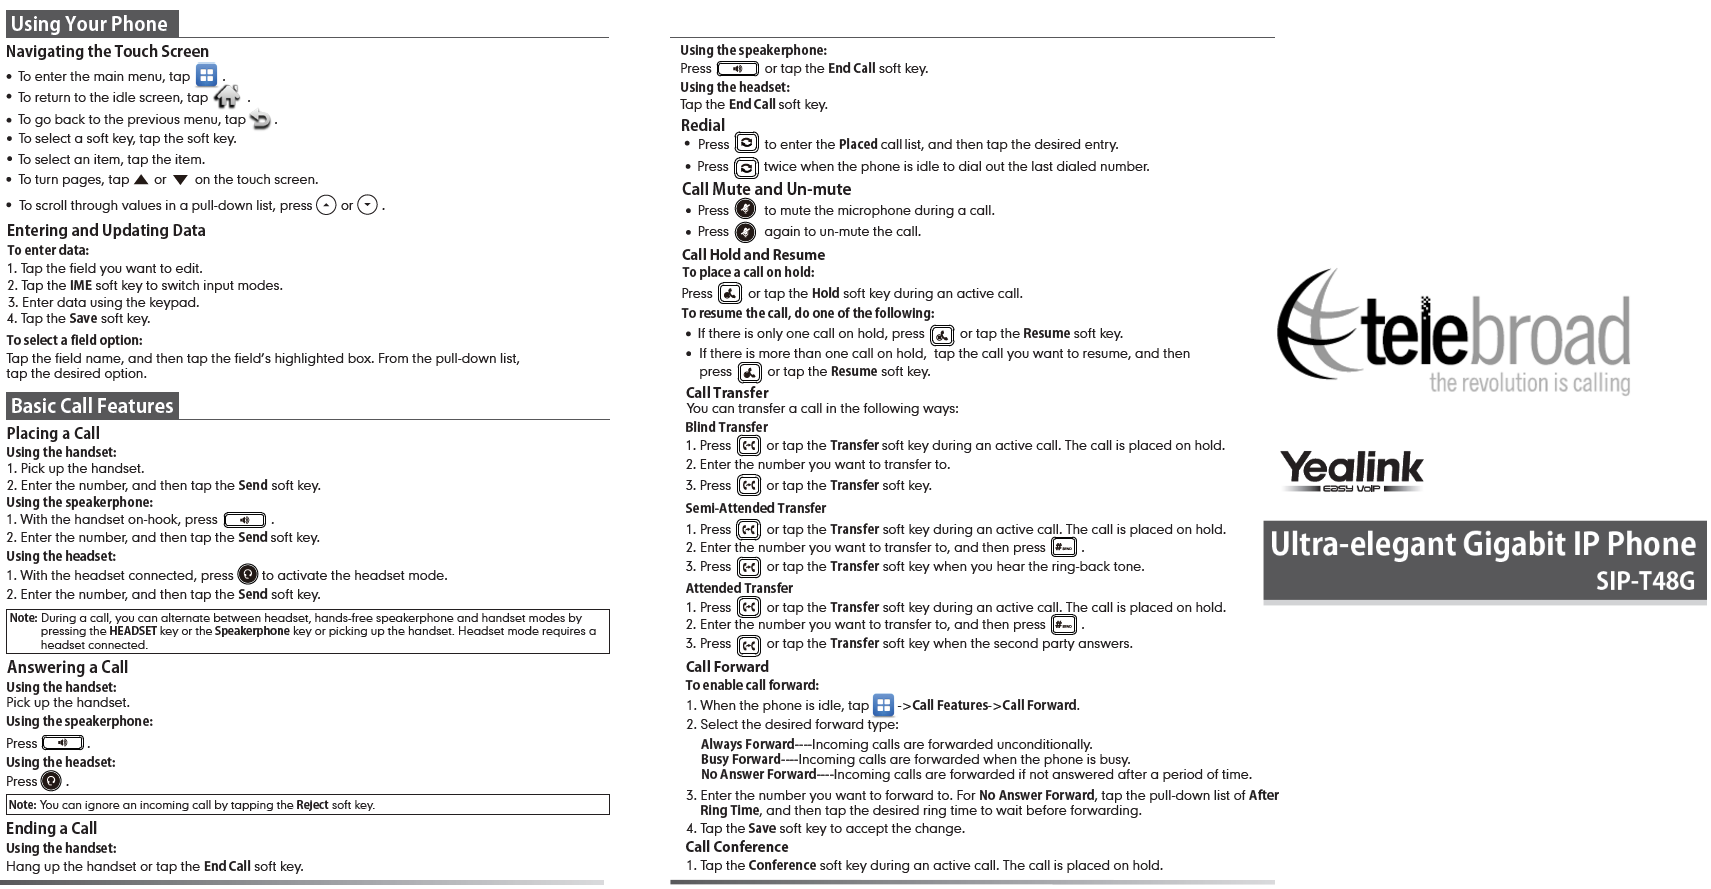 Yealink T48G Quick User Guide and Keys Layout: Teleboard